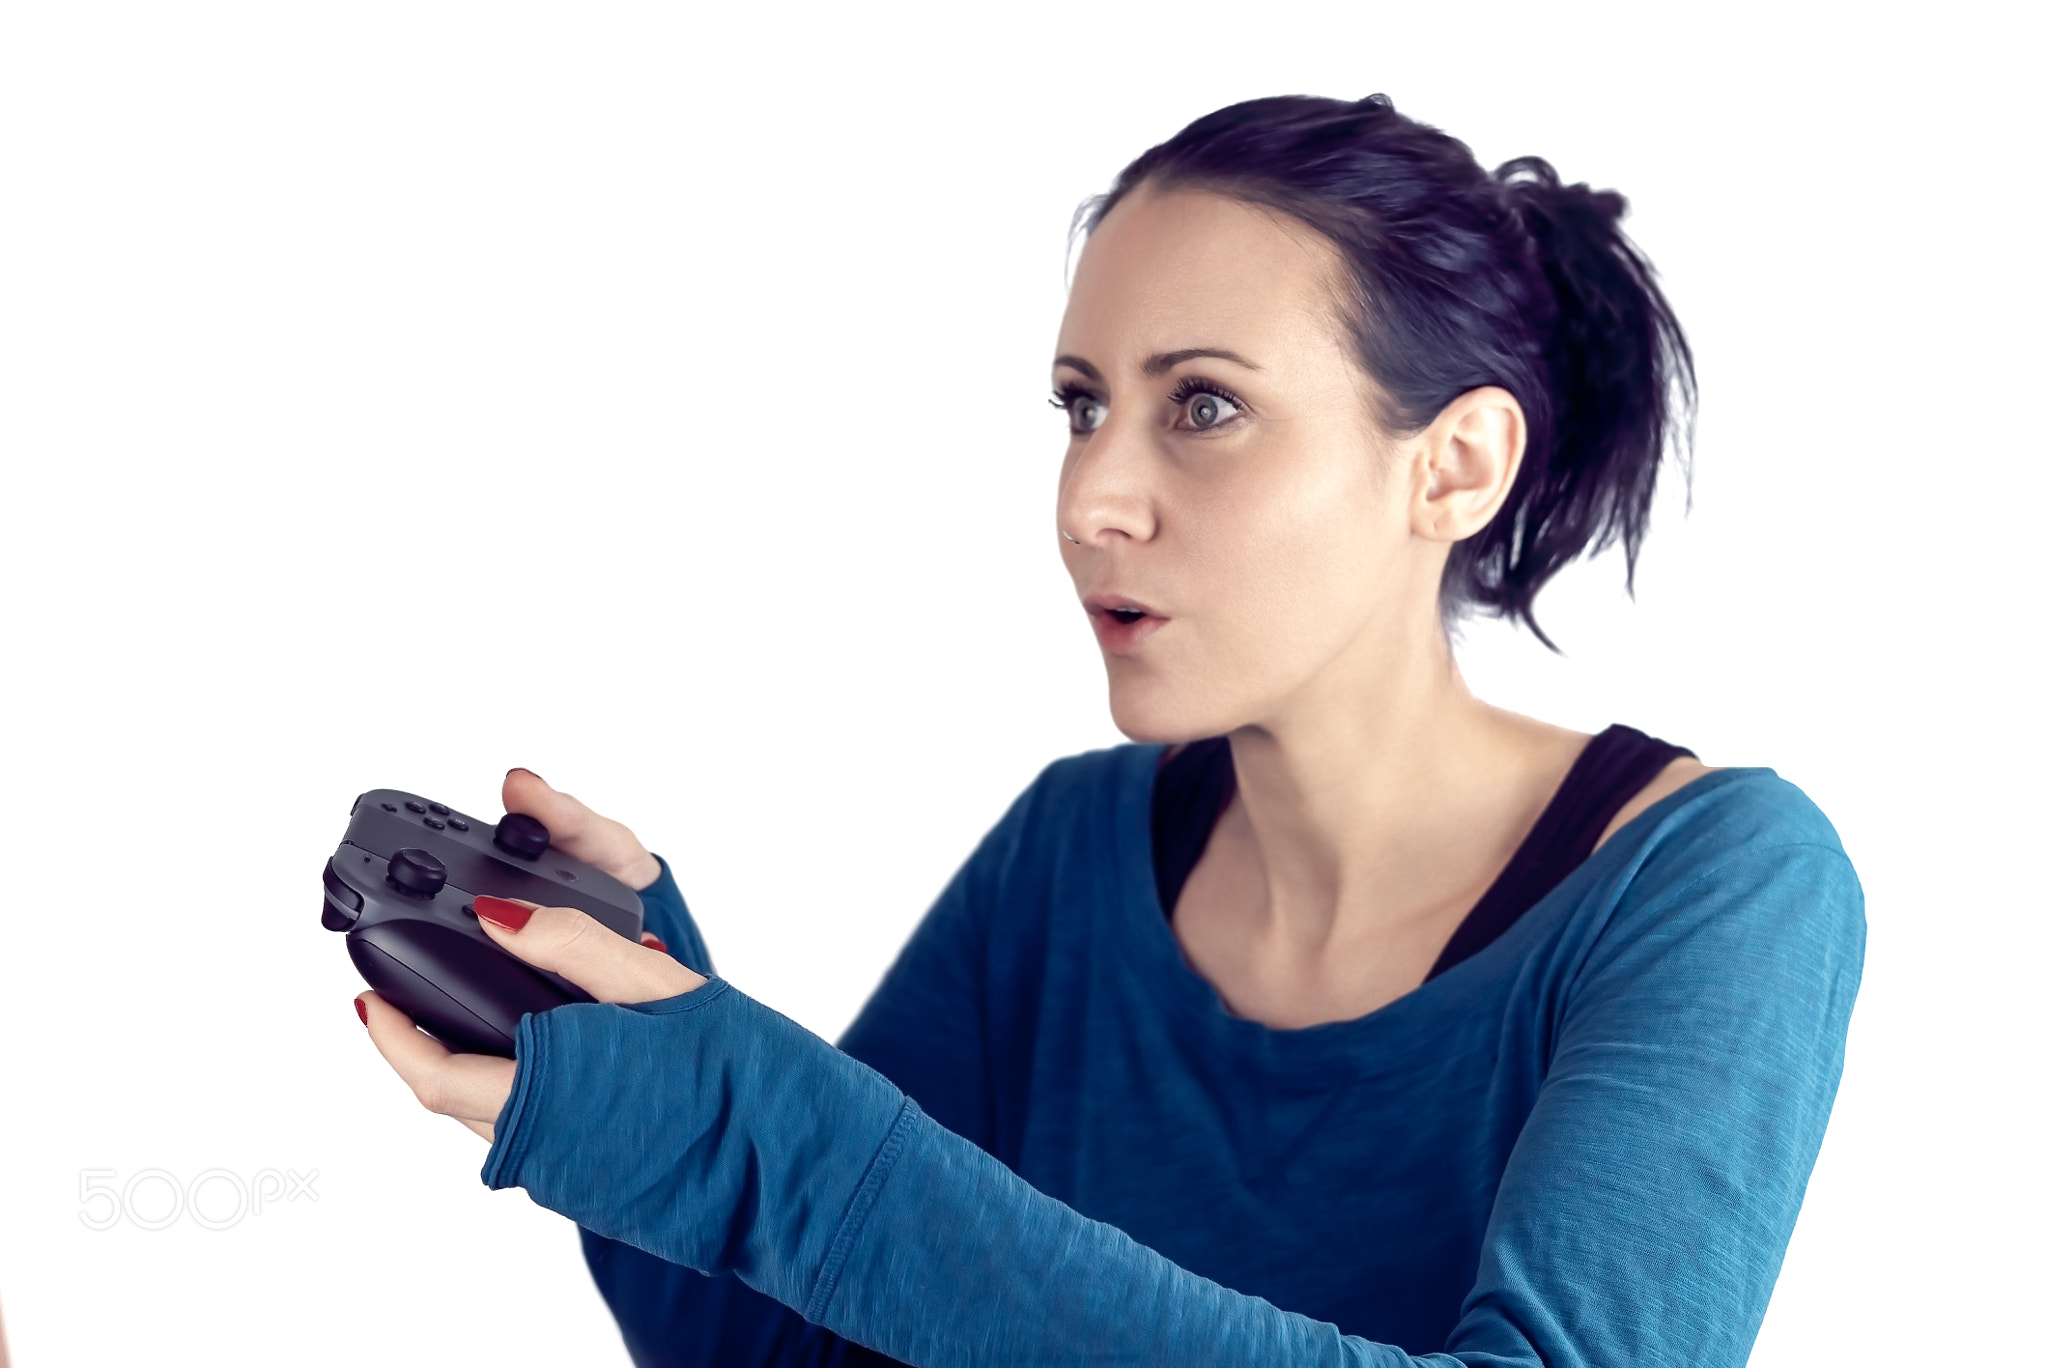 Young woman with blue sweater and red nail polish playing video game on wireless gaming...